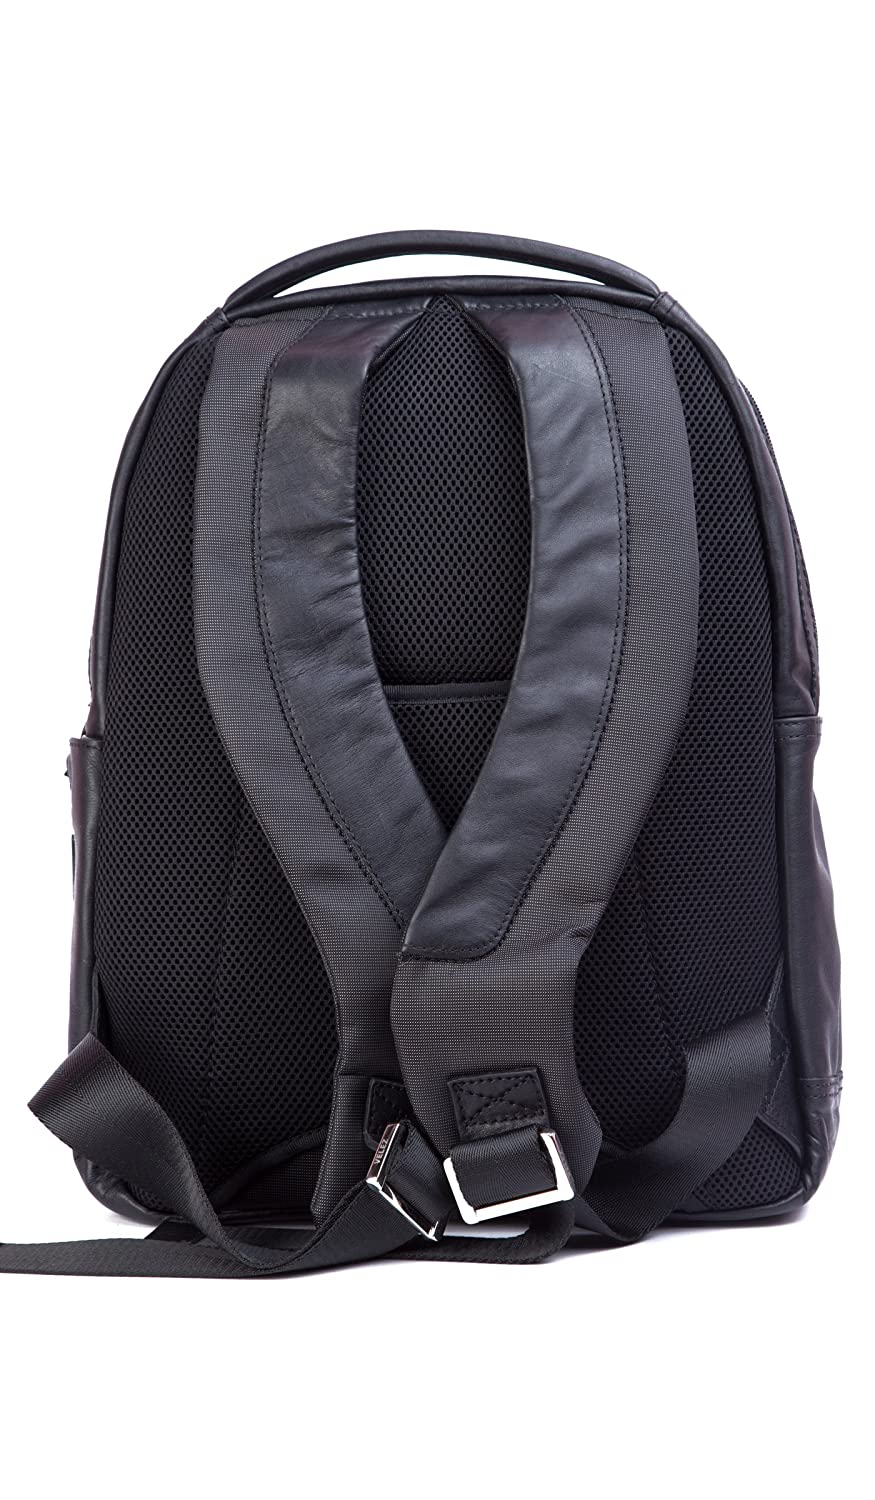 Velez Mens Genuine Leather Backpack | Bolsos para Hombres en Cuero Colombiano